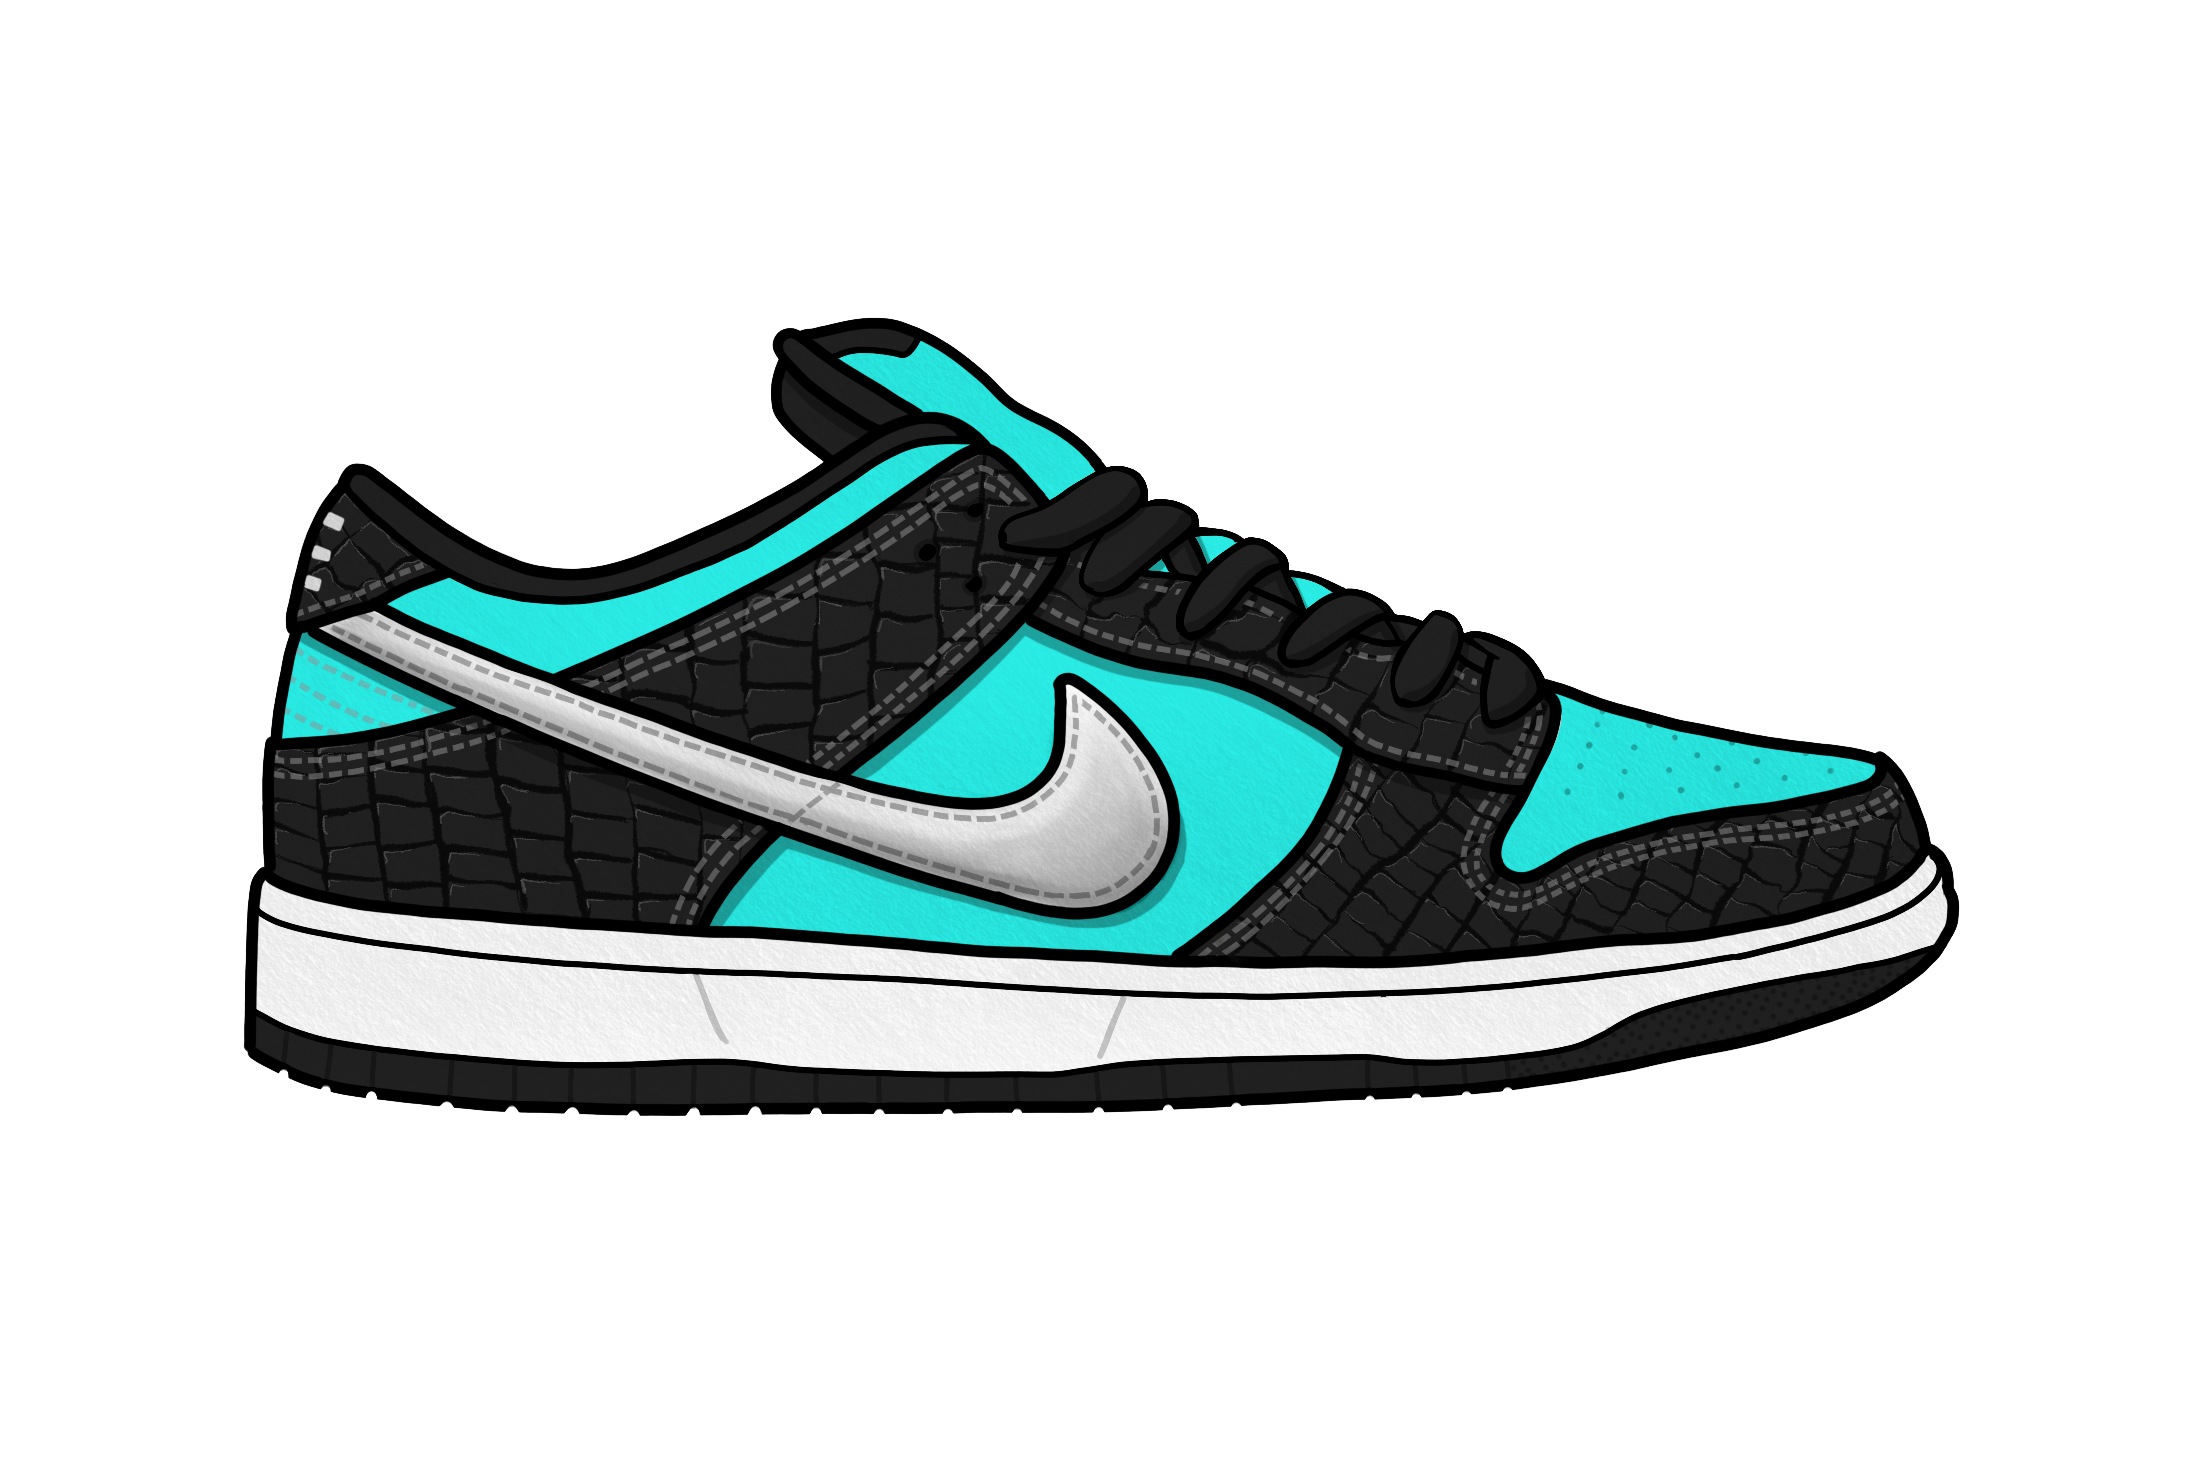 Most iconic nike sbs. Heels clipart expensive shoe